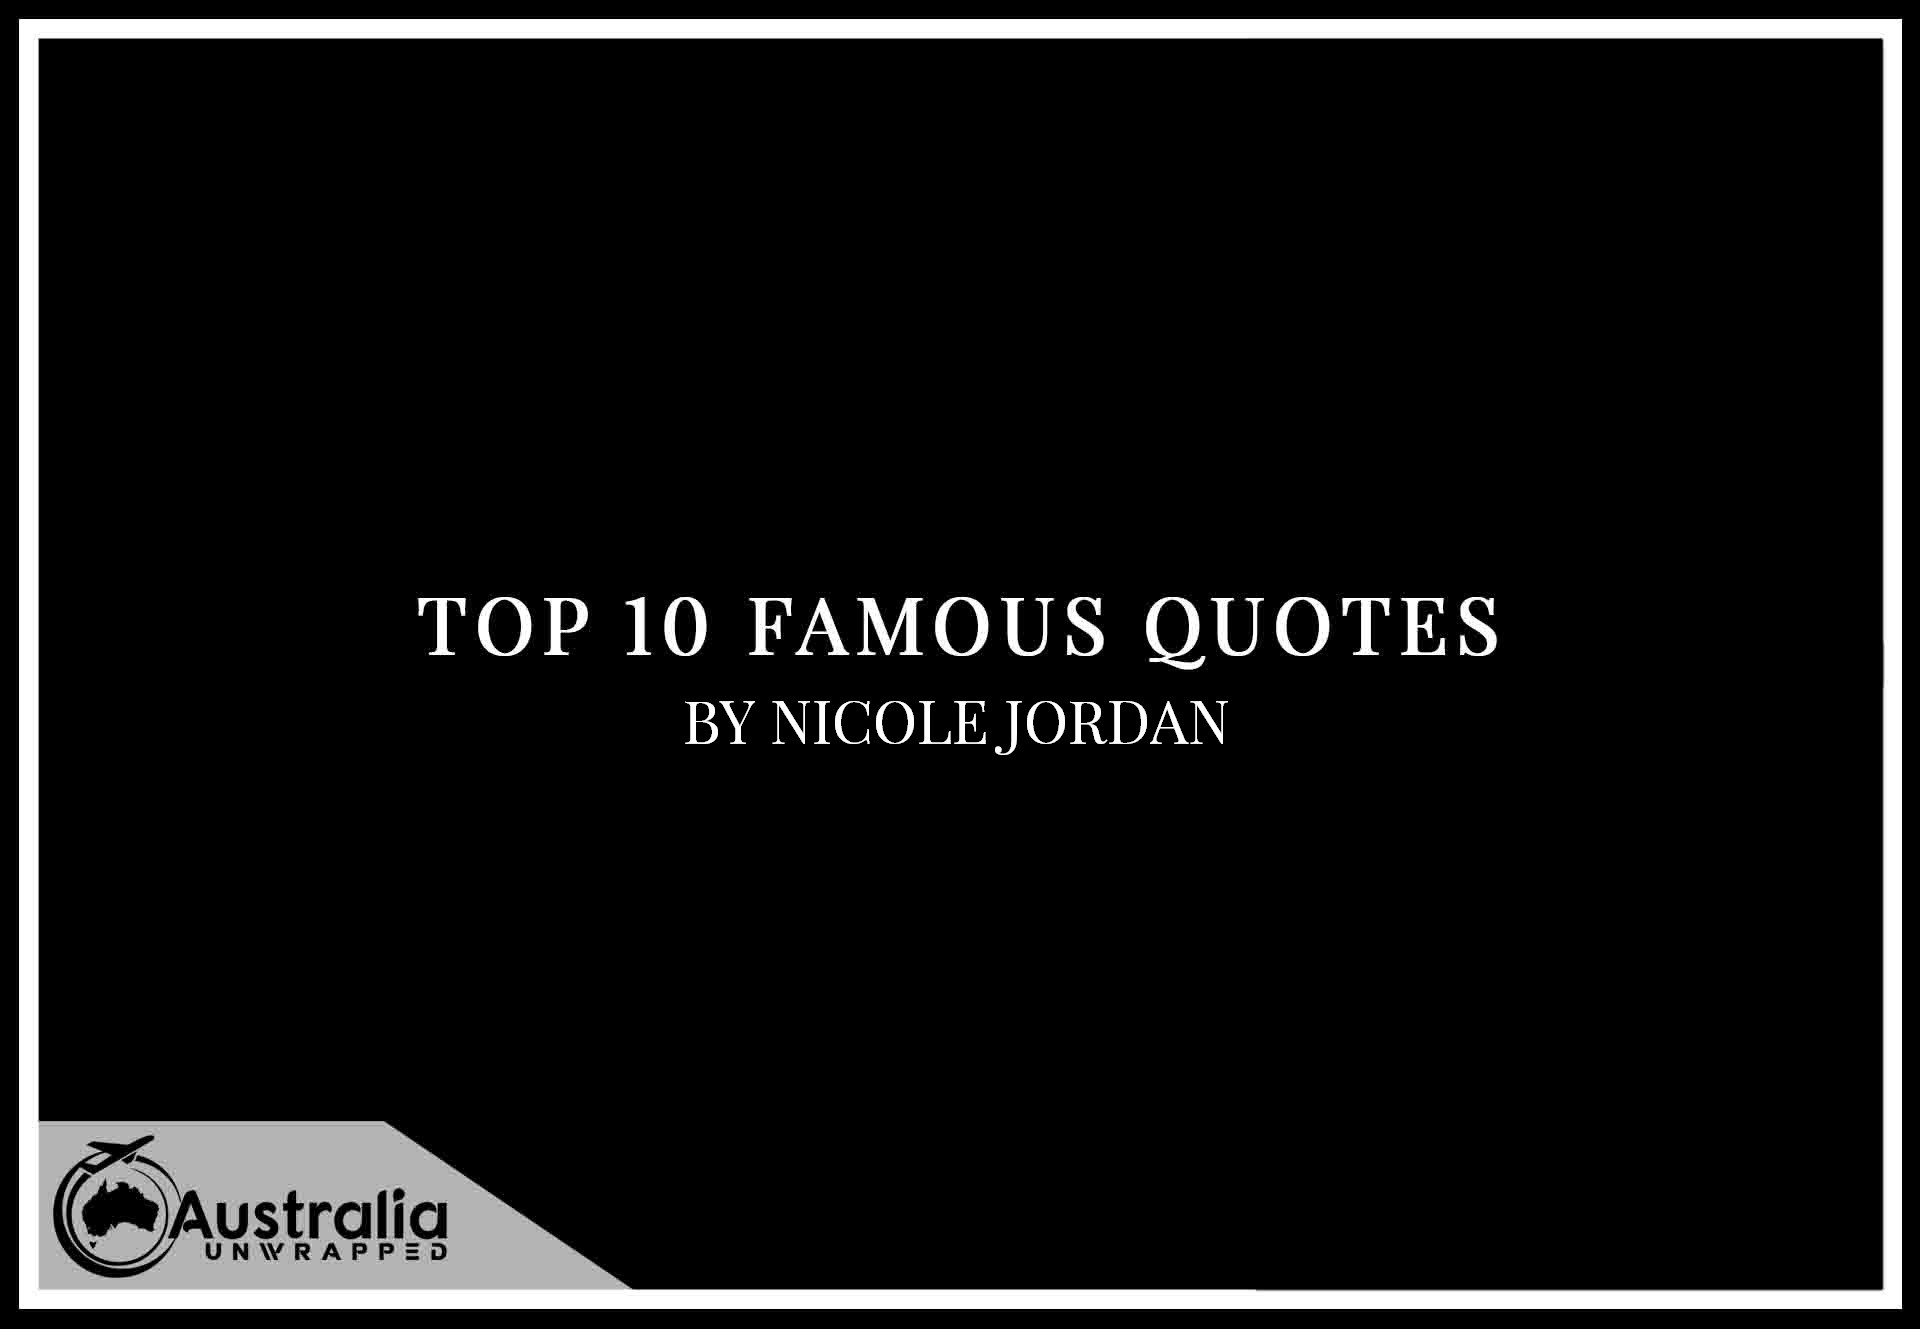 Top 10 Famous Quotes by Author Nicole Jordan